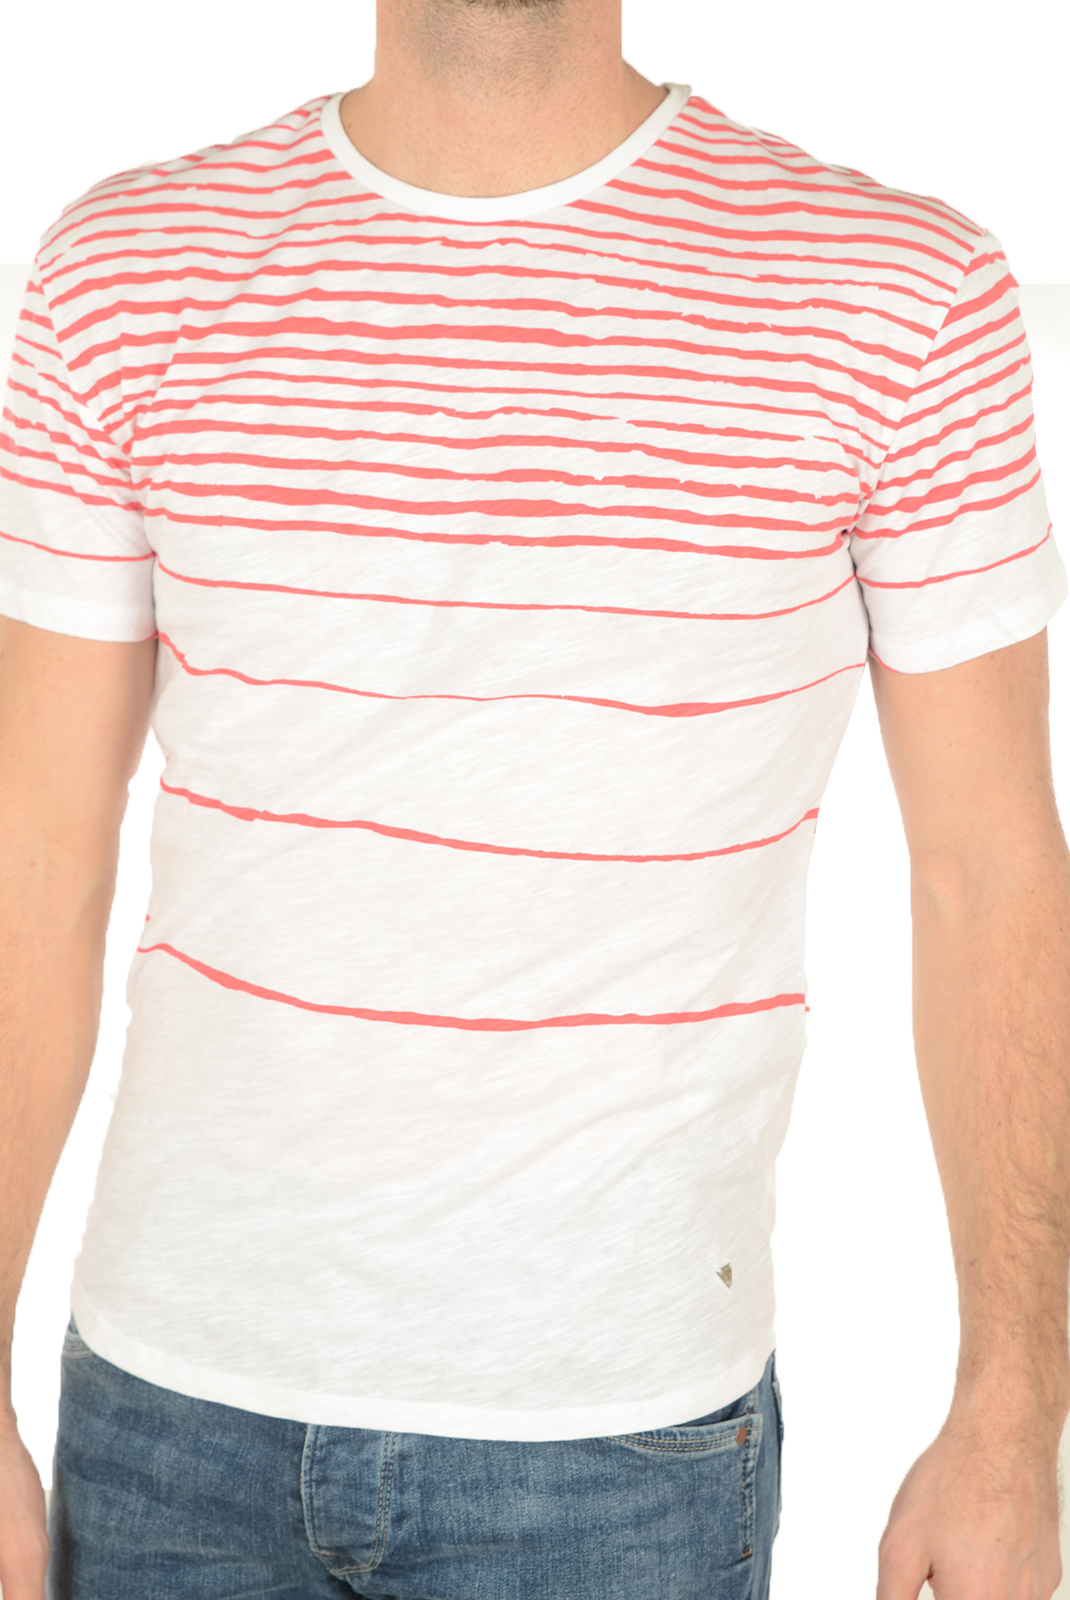 T-S manches courtes  Guess jeans M72P27 K4YI0 A543 BLANC ROUGE